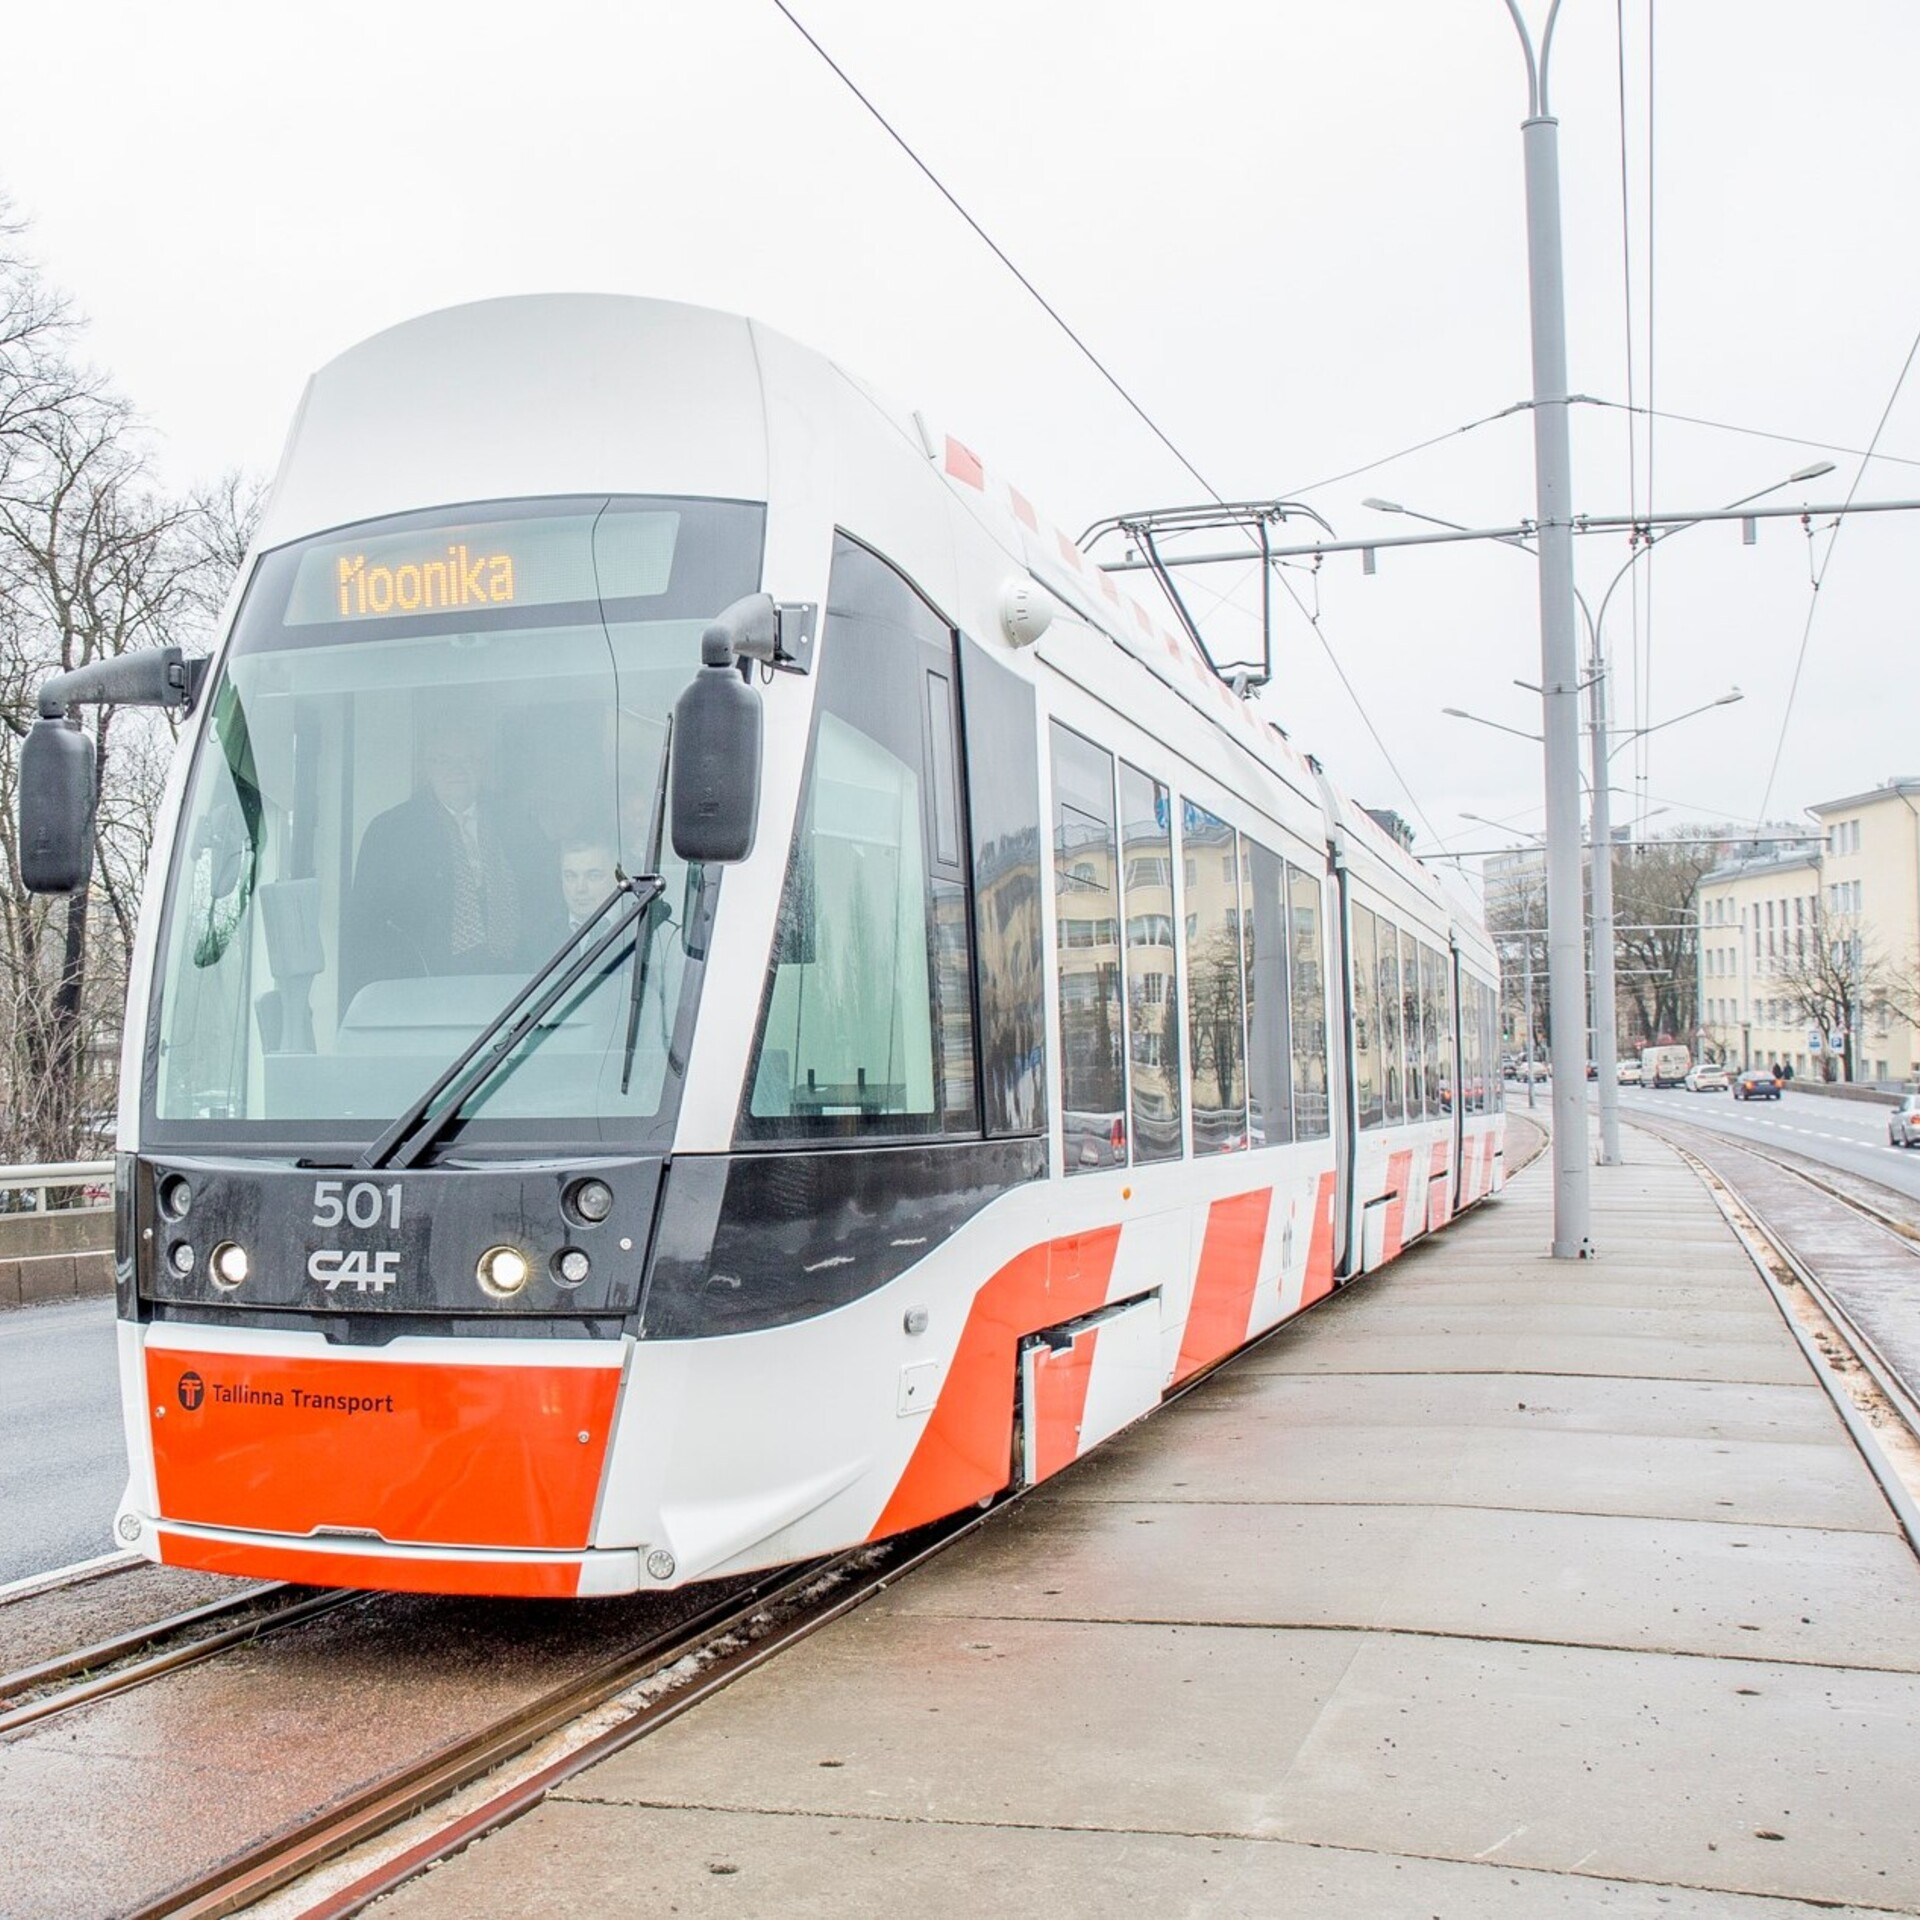 223a9f22b90 New harbor tram line confirmed: Tallinn to purchase additional new trams (0)